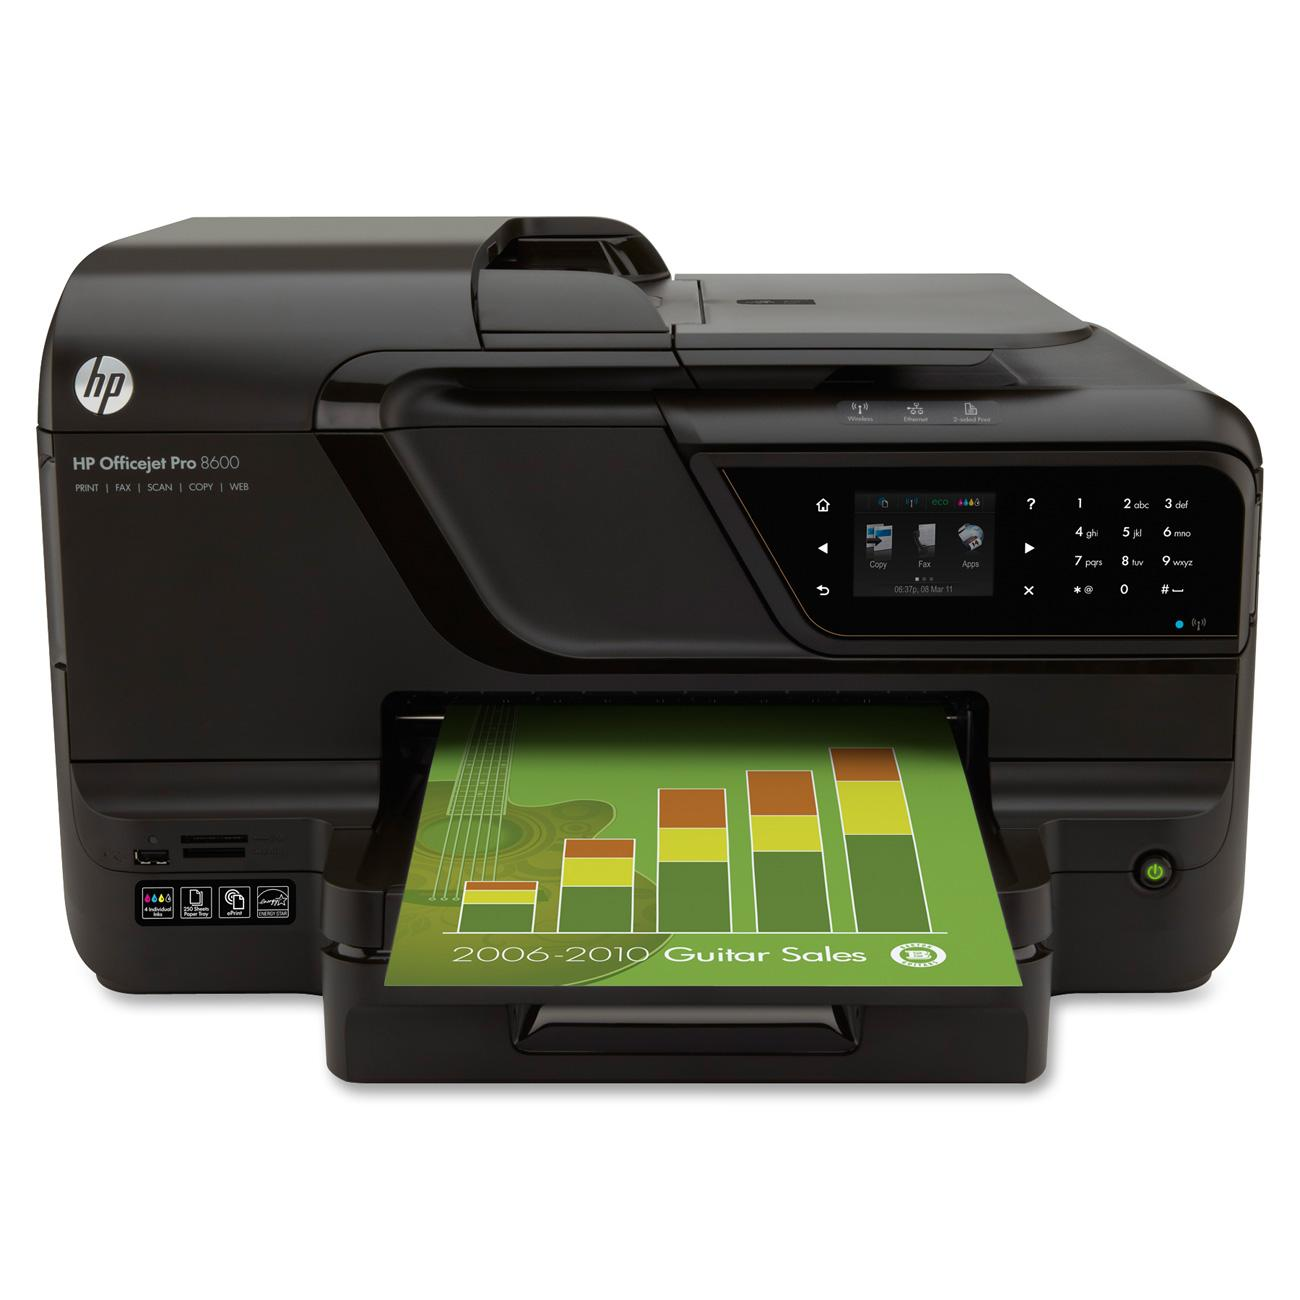 HP Officejet Pro 8600 Inkjet e-All-in-One Printer 0